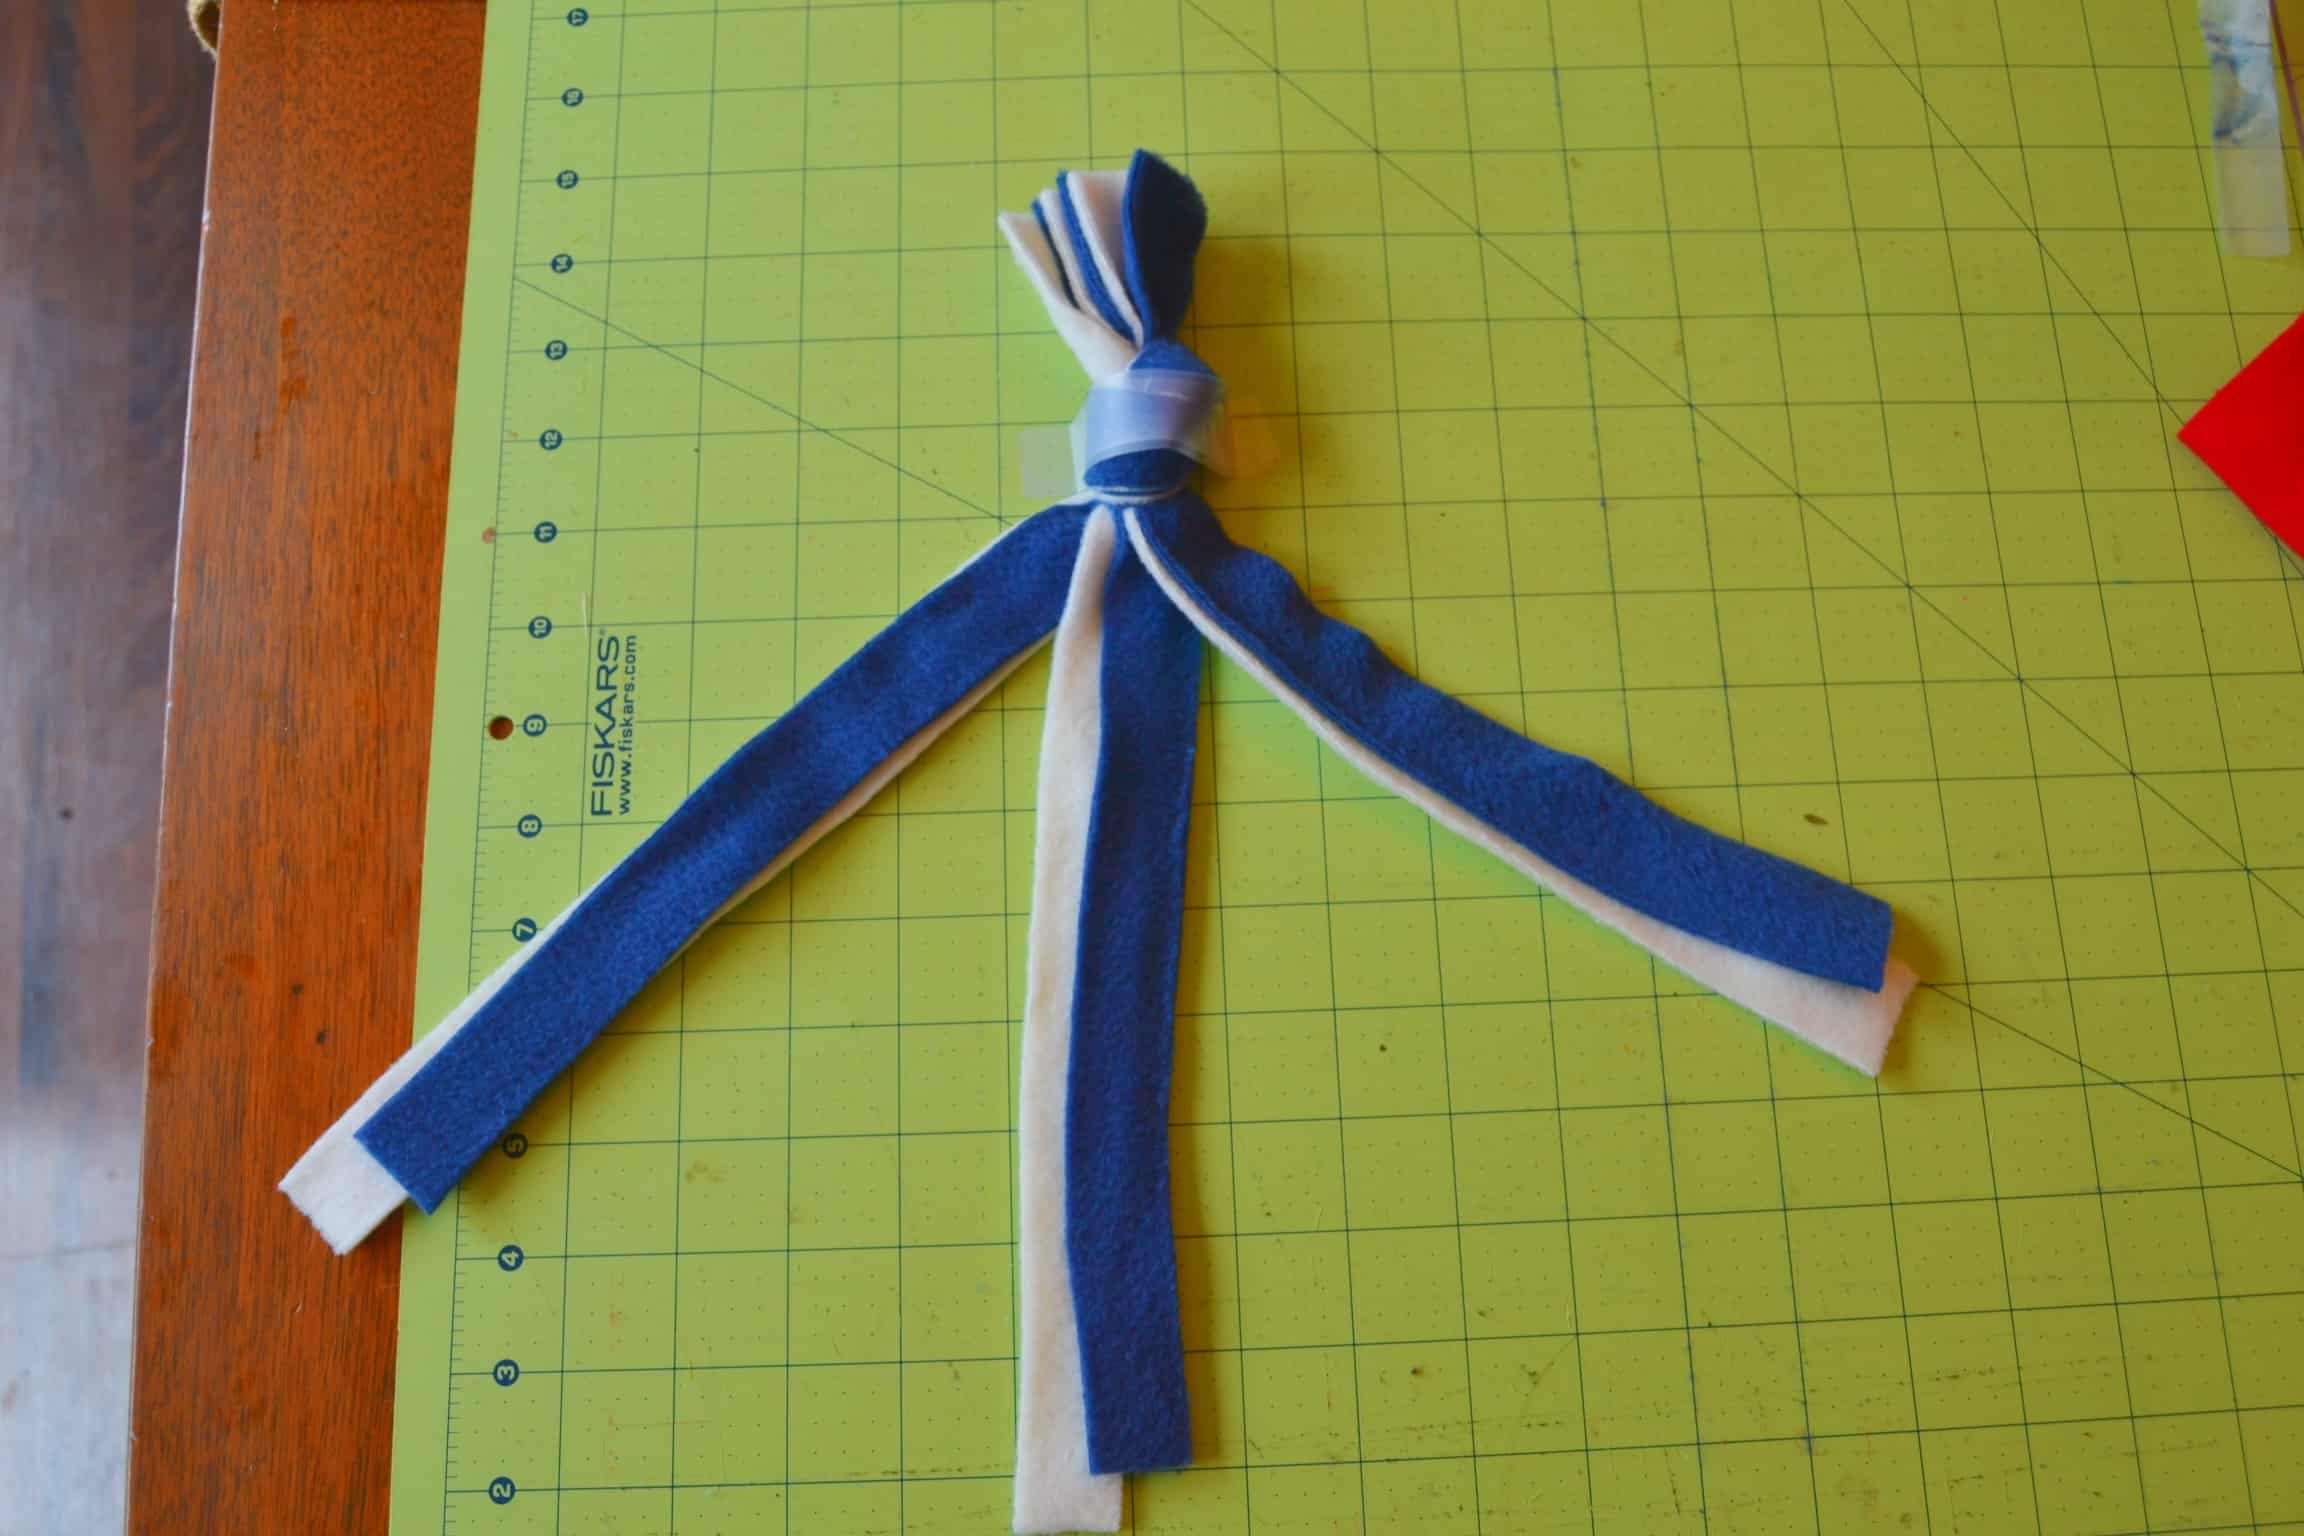 6 strips of fleece fabric with a knot at the top, separated into 3 groups of 2